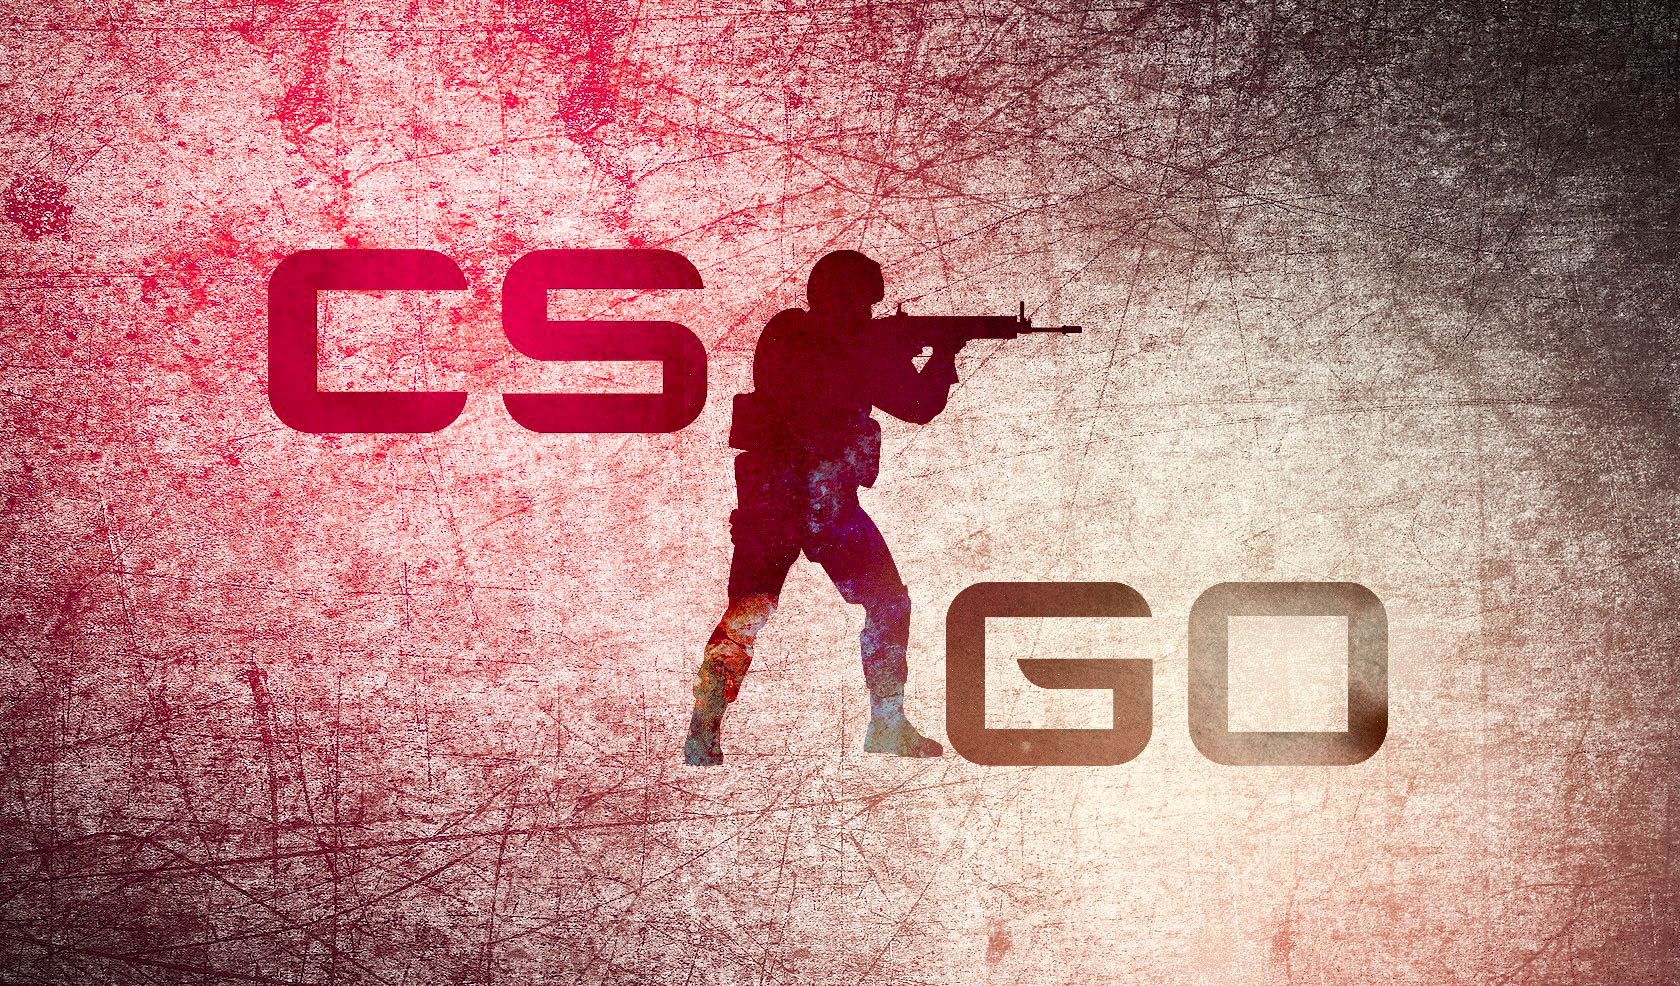 counter-strike global offensive wallpapers